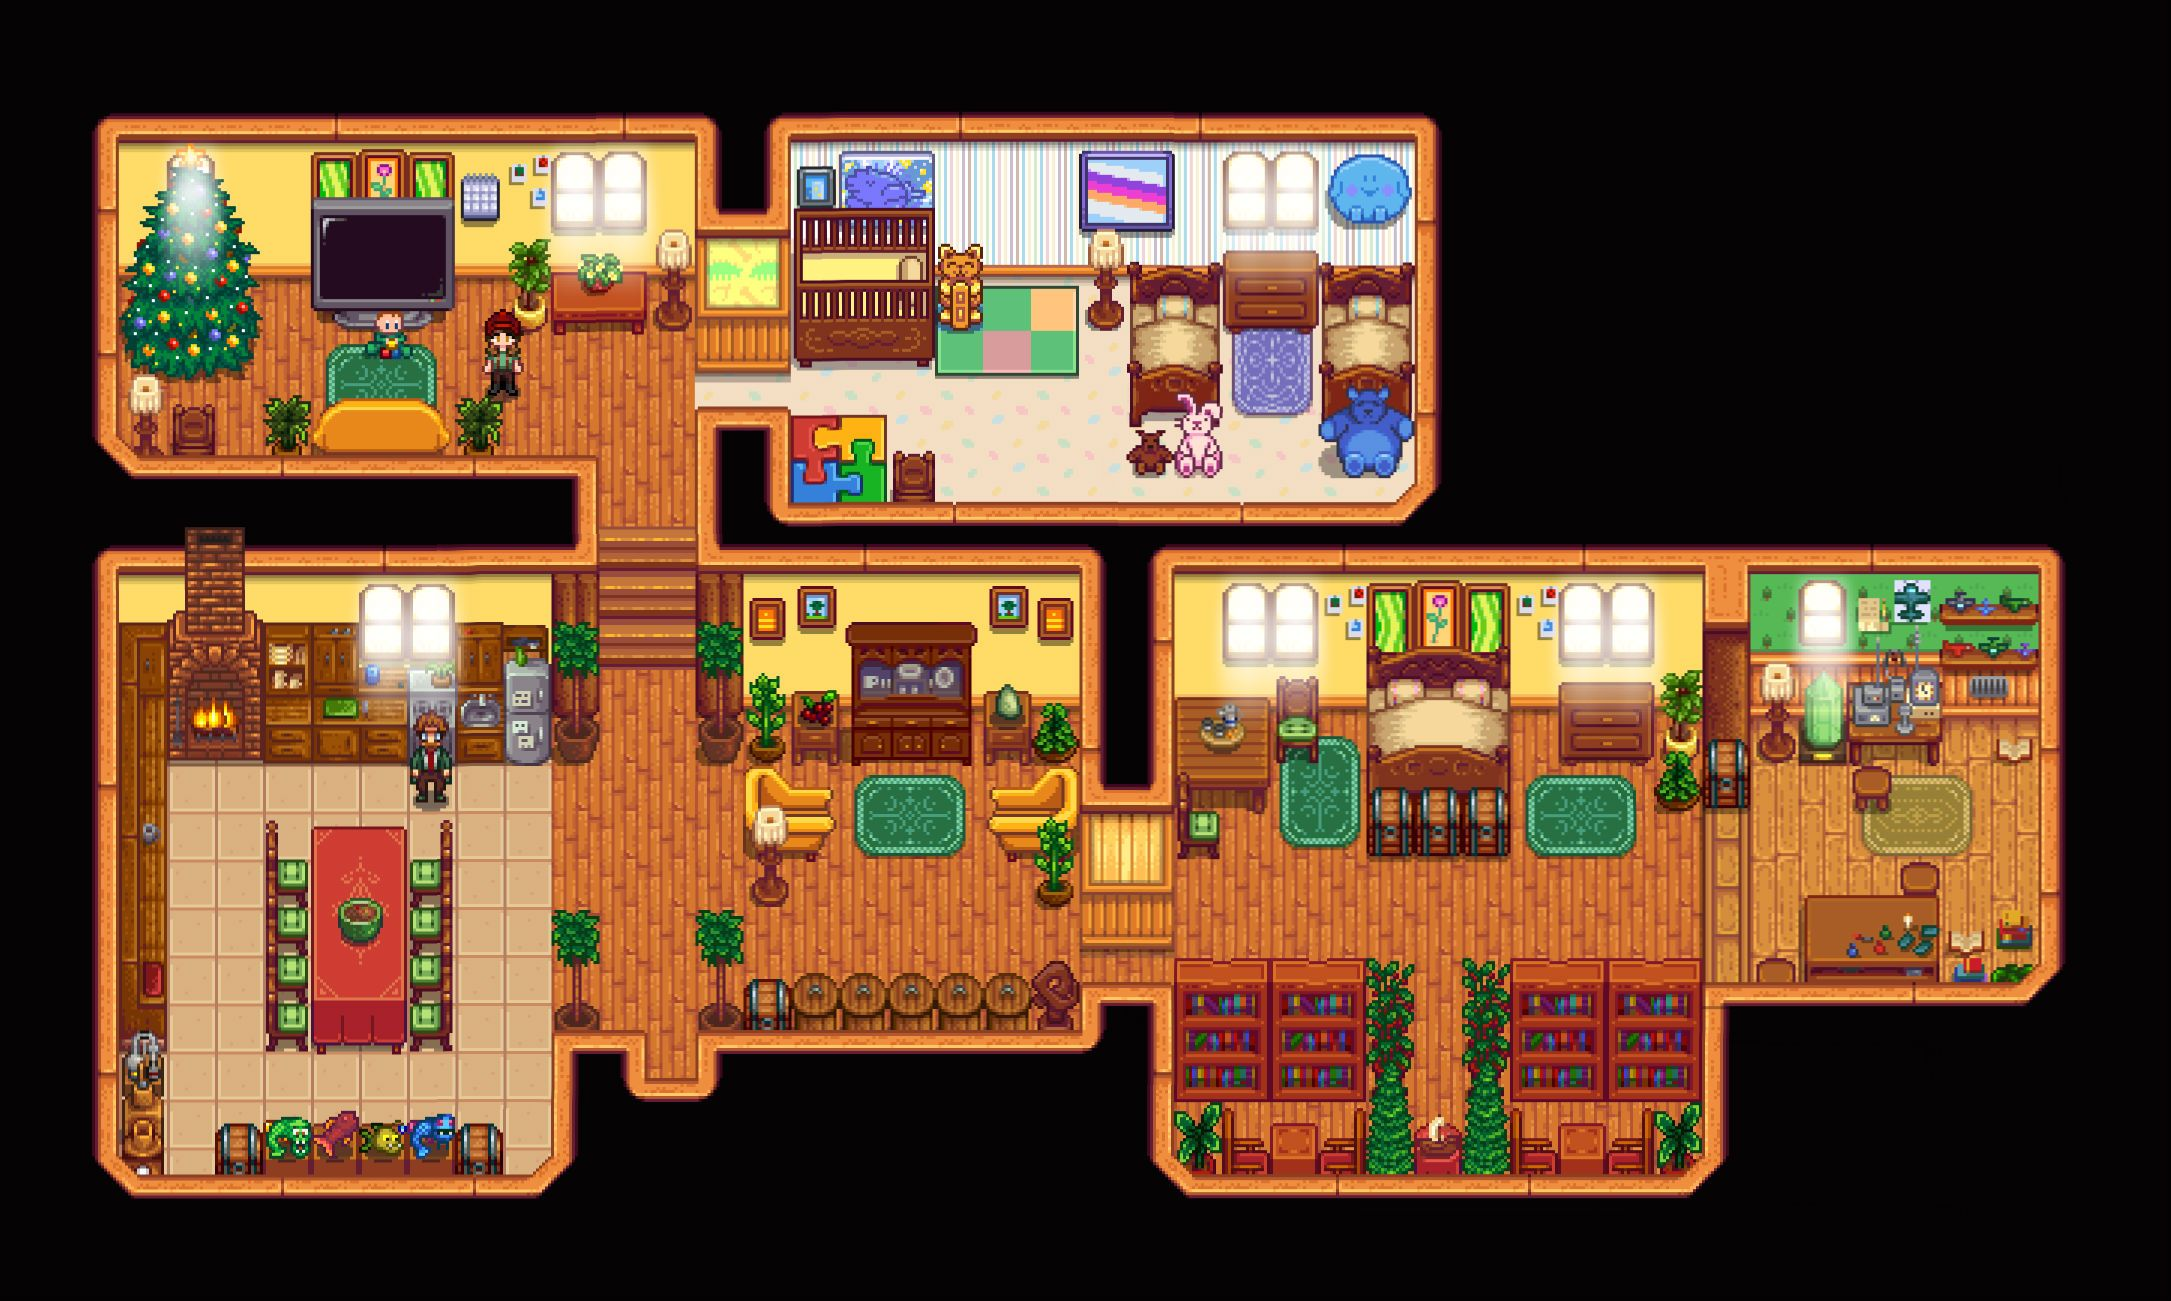 8nhkwwo Jpg 2171 1301 Stardew Valley Layout Stardew Valley